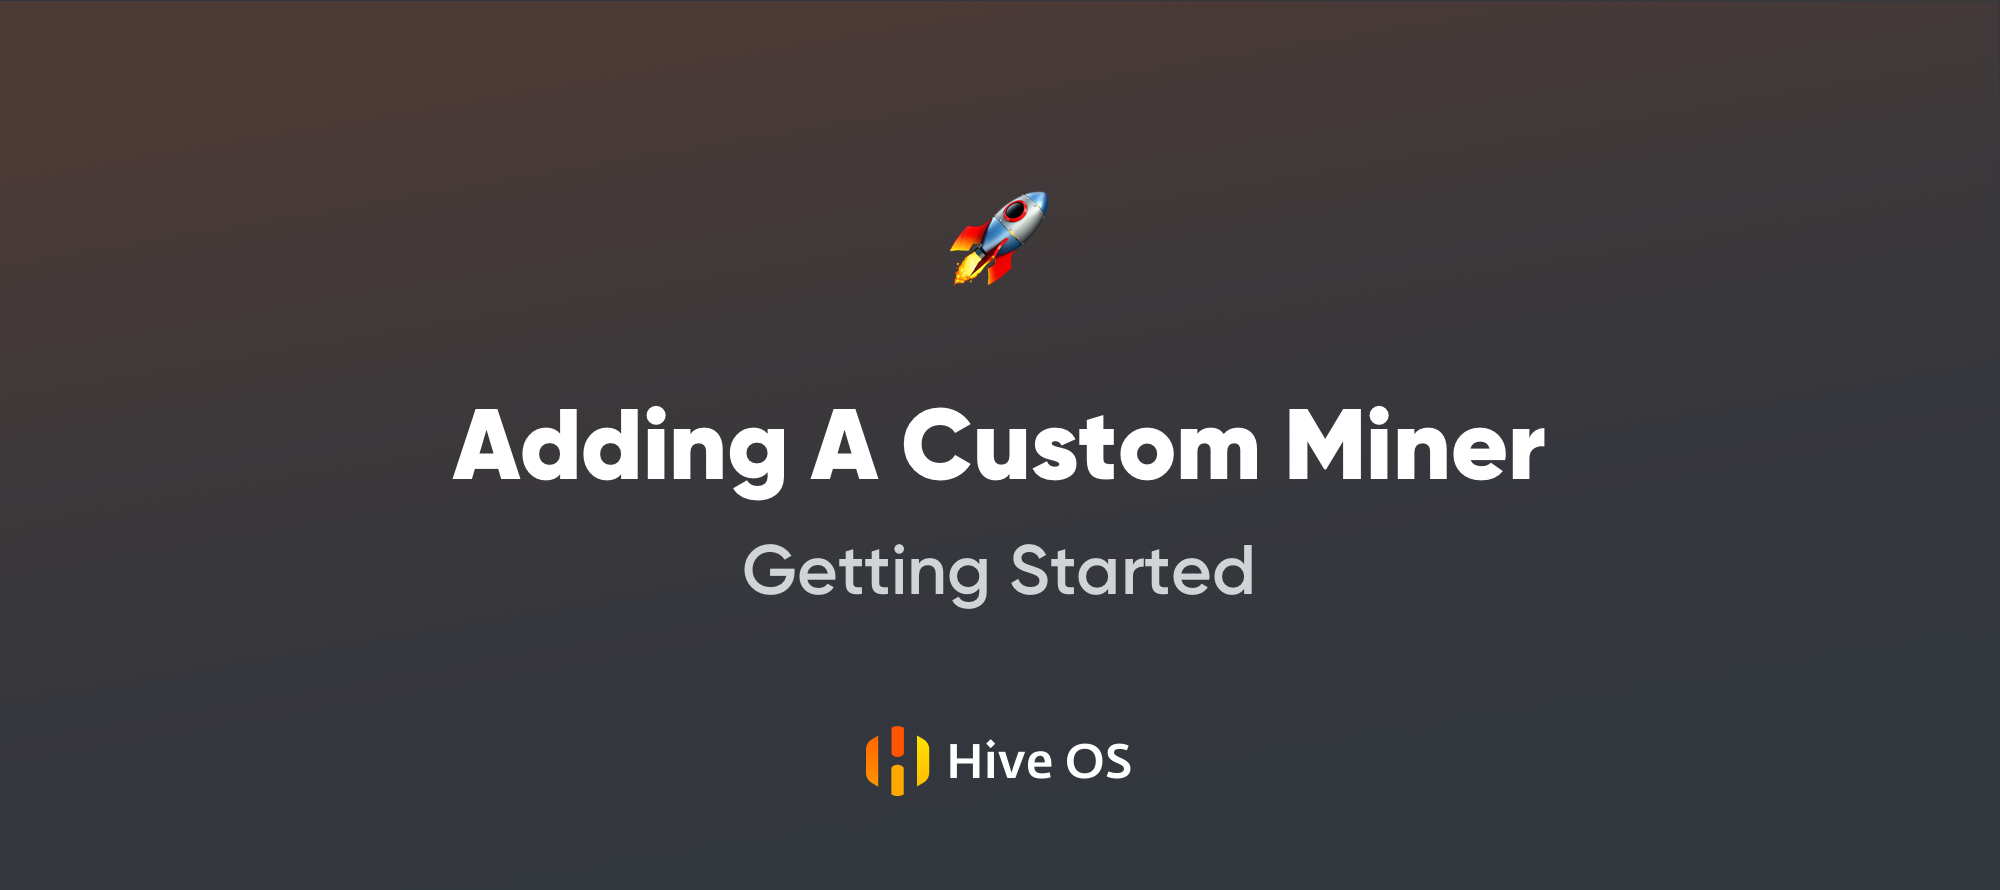 Getting Started with Hive OS — Adding A Custom Miner